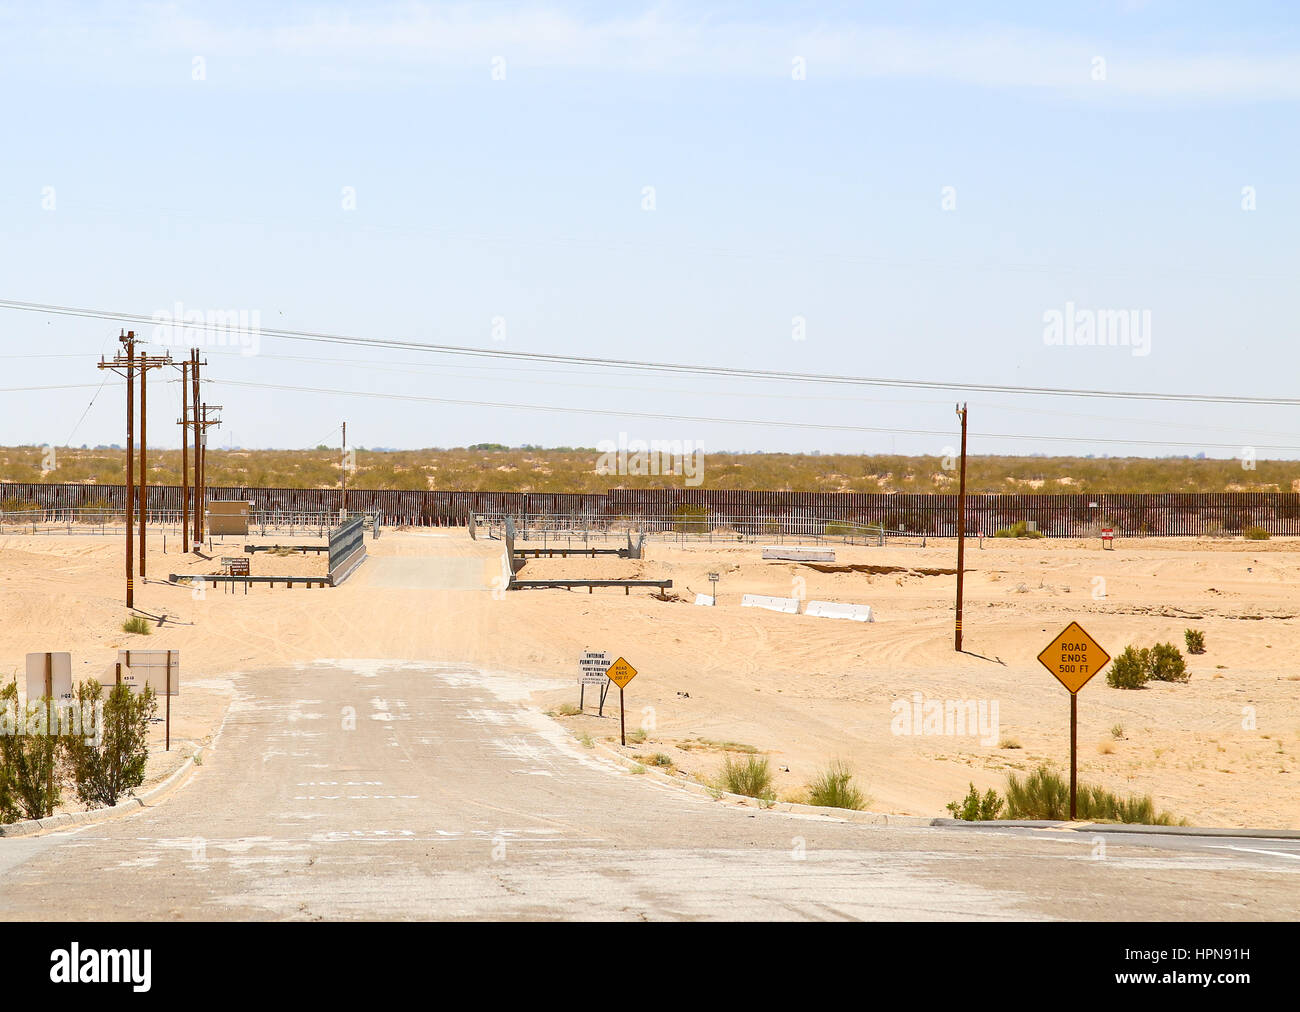 Winterhaven, California, USA - May 26, 2015: Dead end road at the fence at the U.S.-Mexico border. - Stock Image